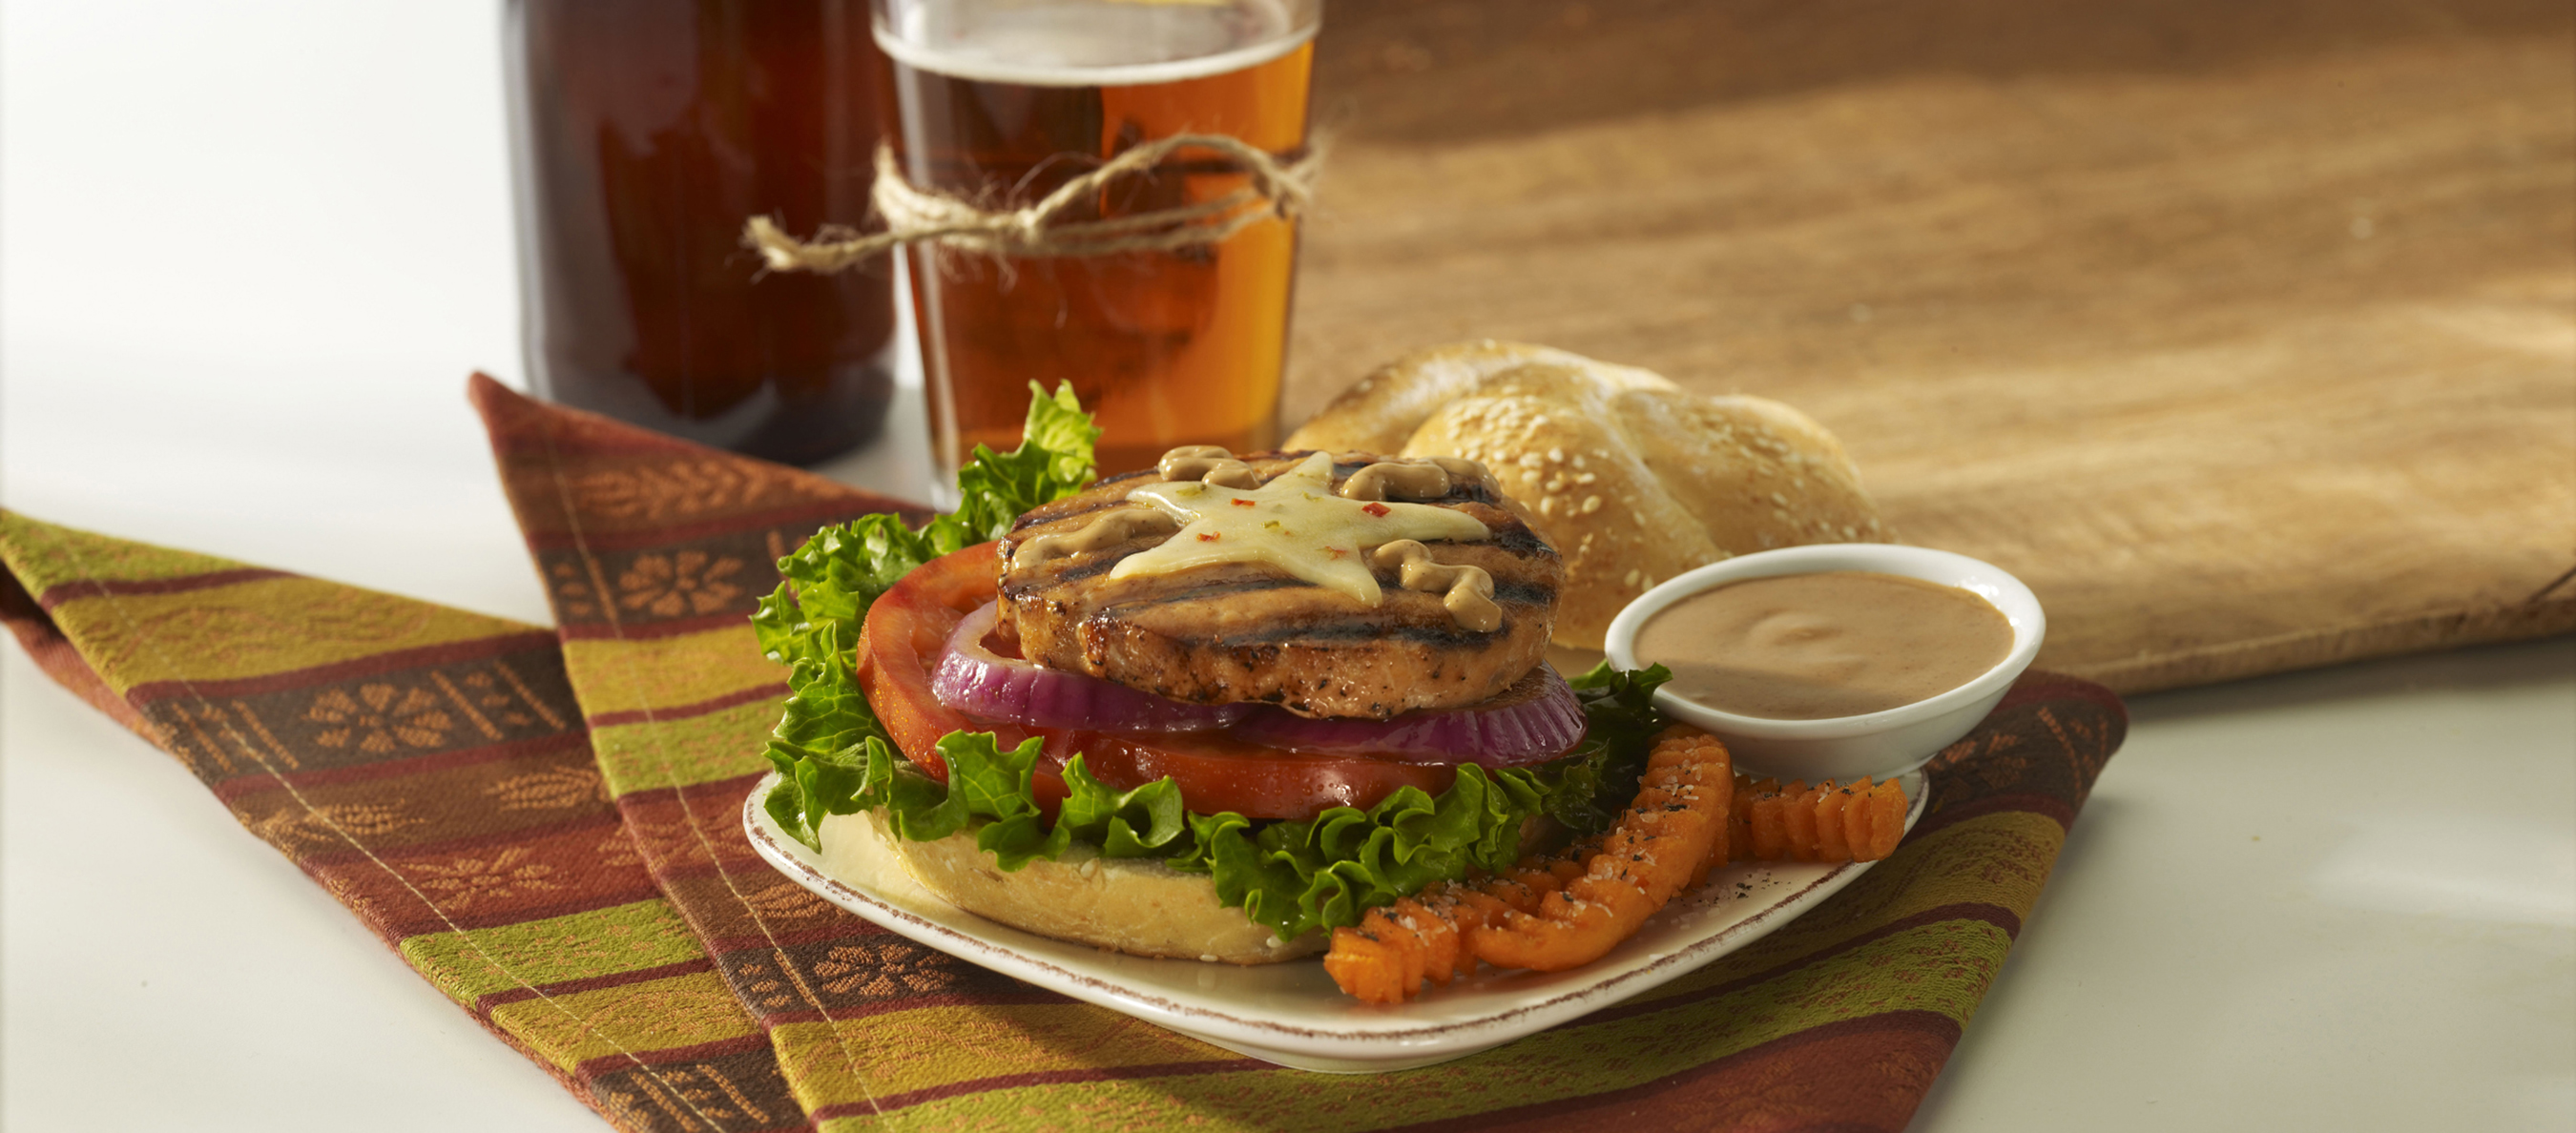 SeaPak Debuts New Salmon Burgers to Land Seafood a Place in Summer Grilling Season